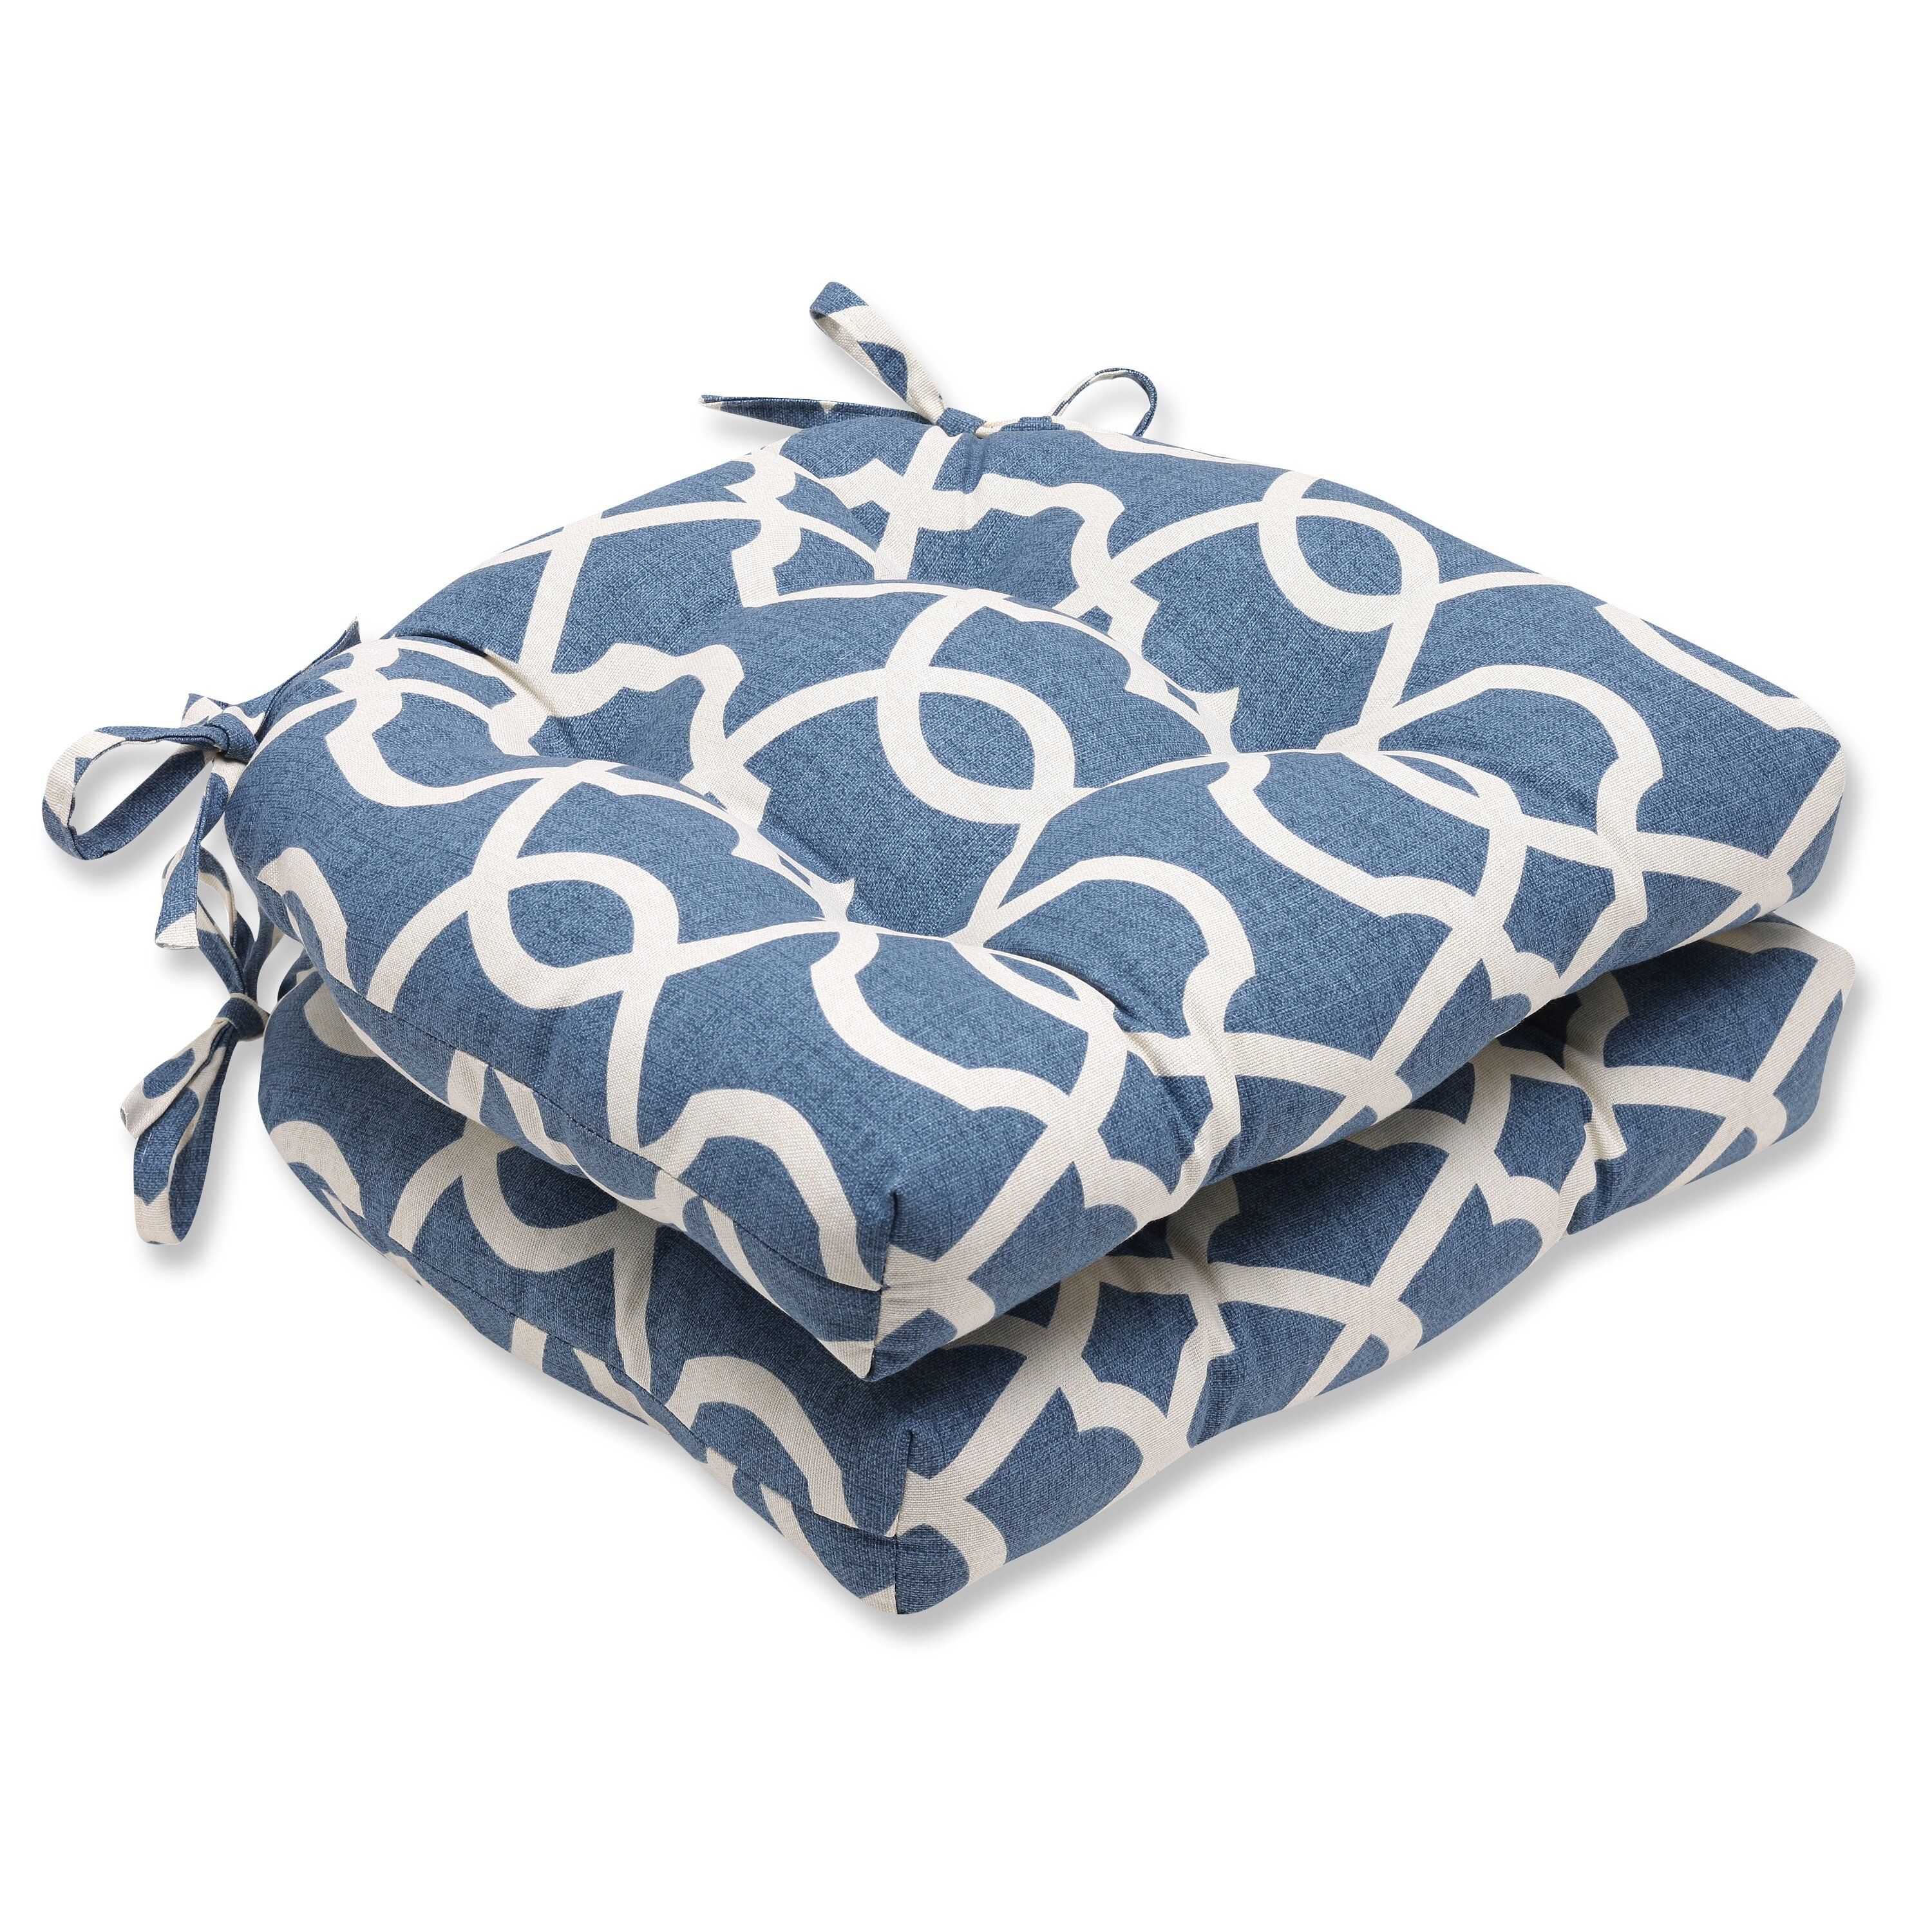 Indoor Dining Room Chair Cushions: Pillow Perfect Indoor Dining Chair Cushion & Reviews